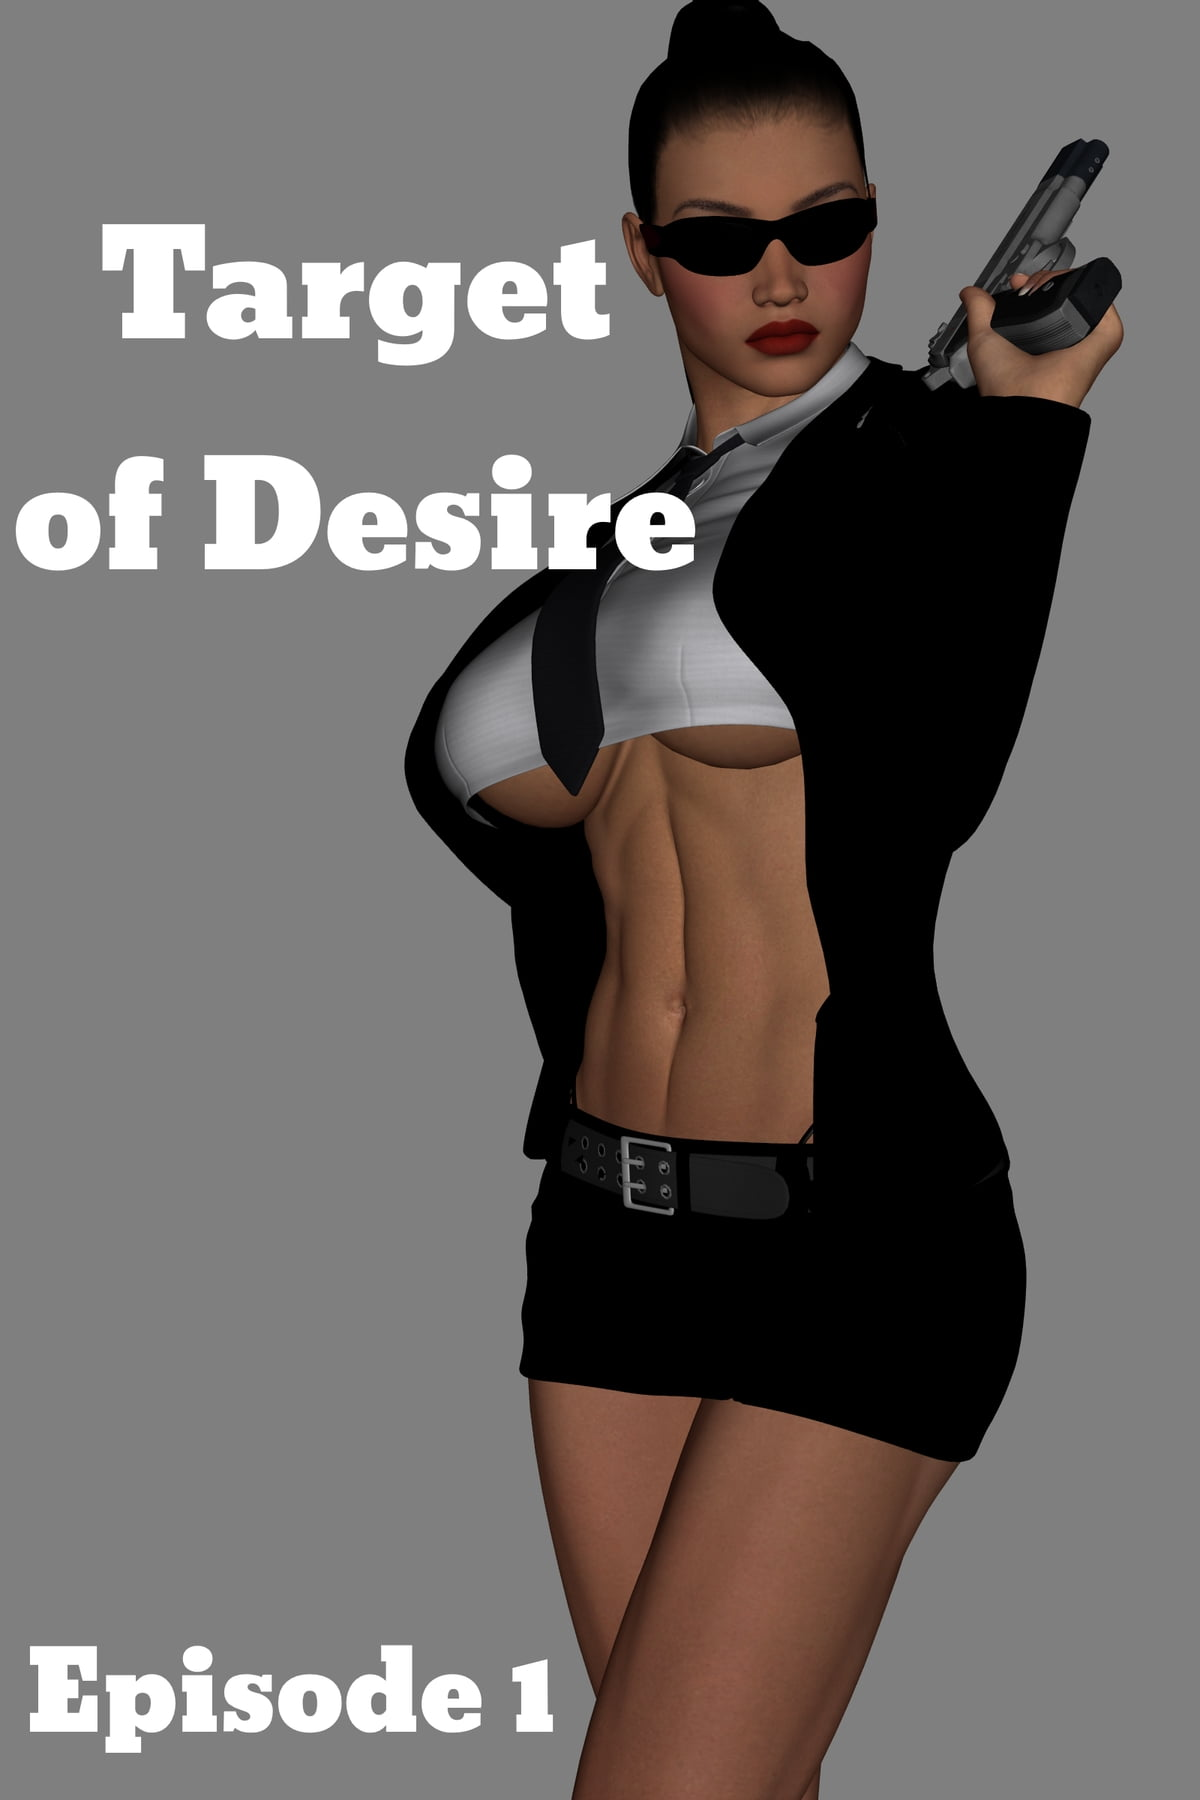 Target of Desire: Episode 1 ebook by Osgoode Media - Rakuten Kobo